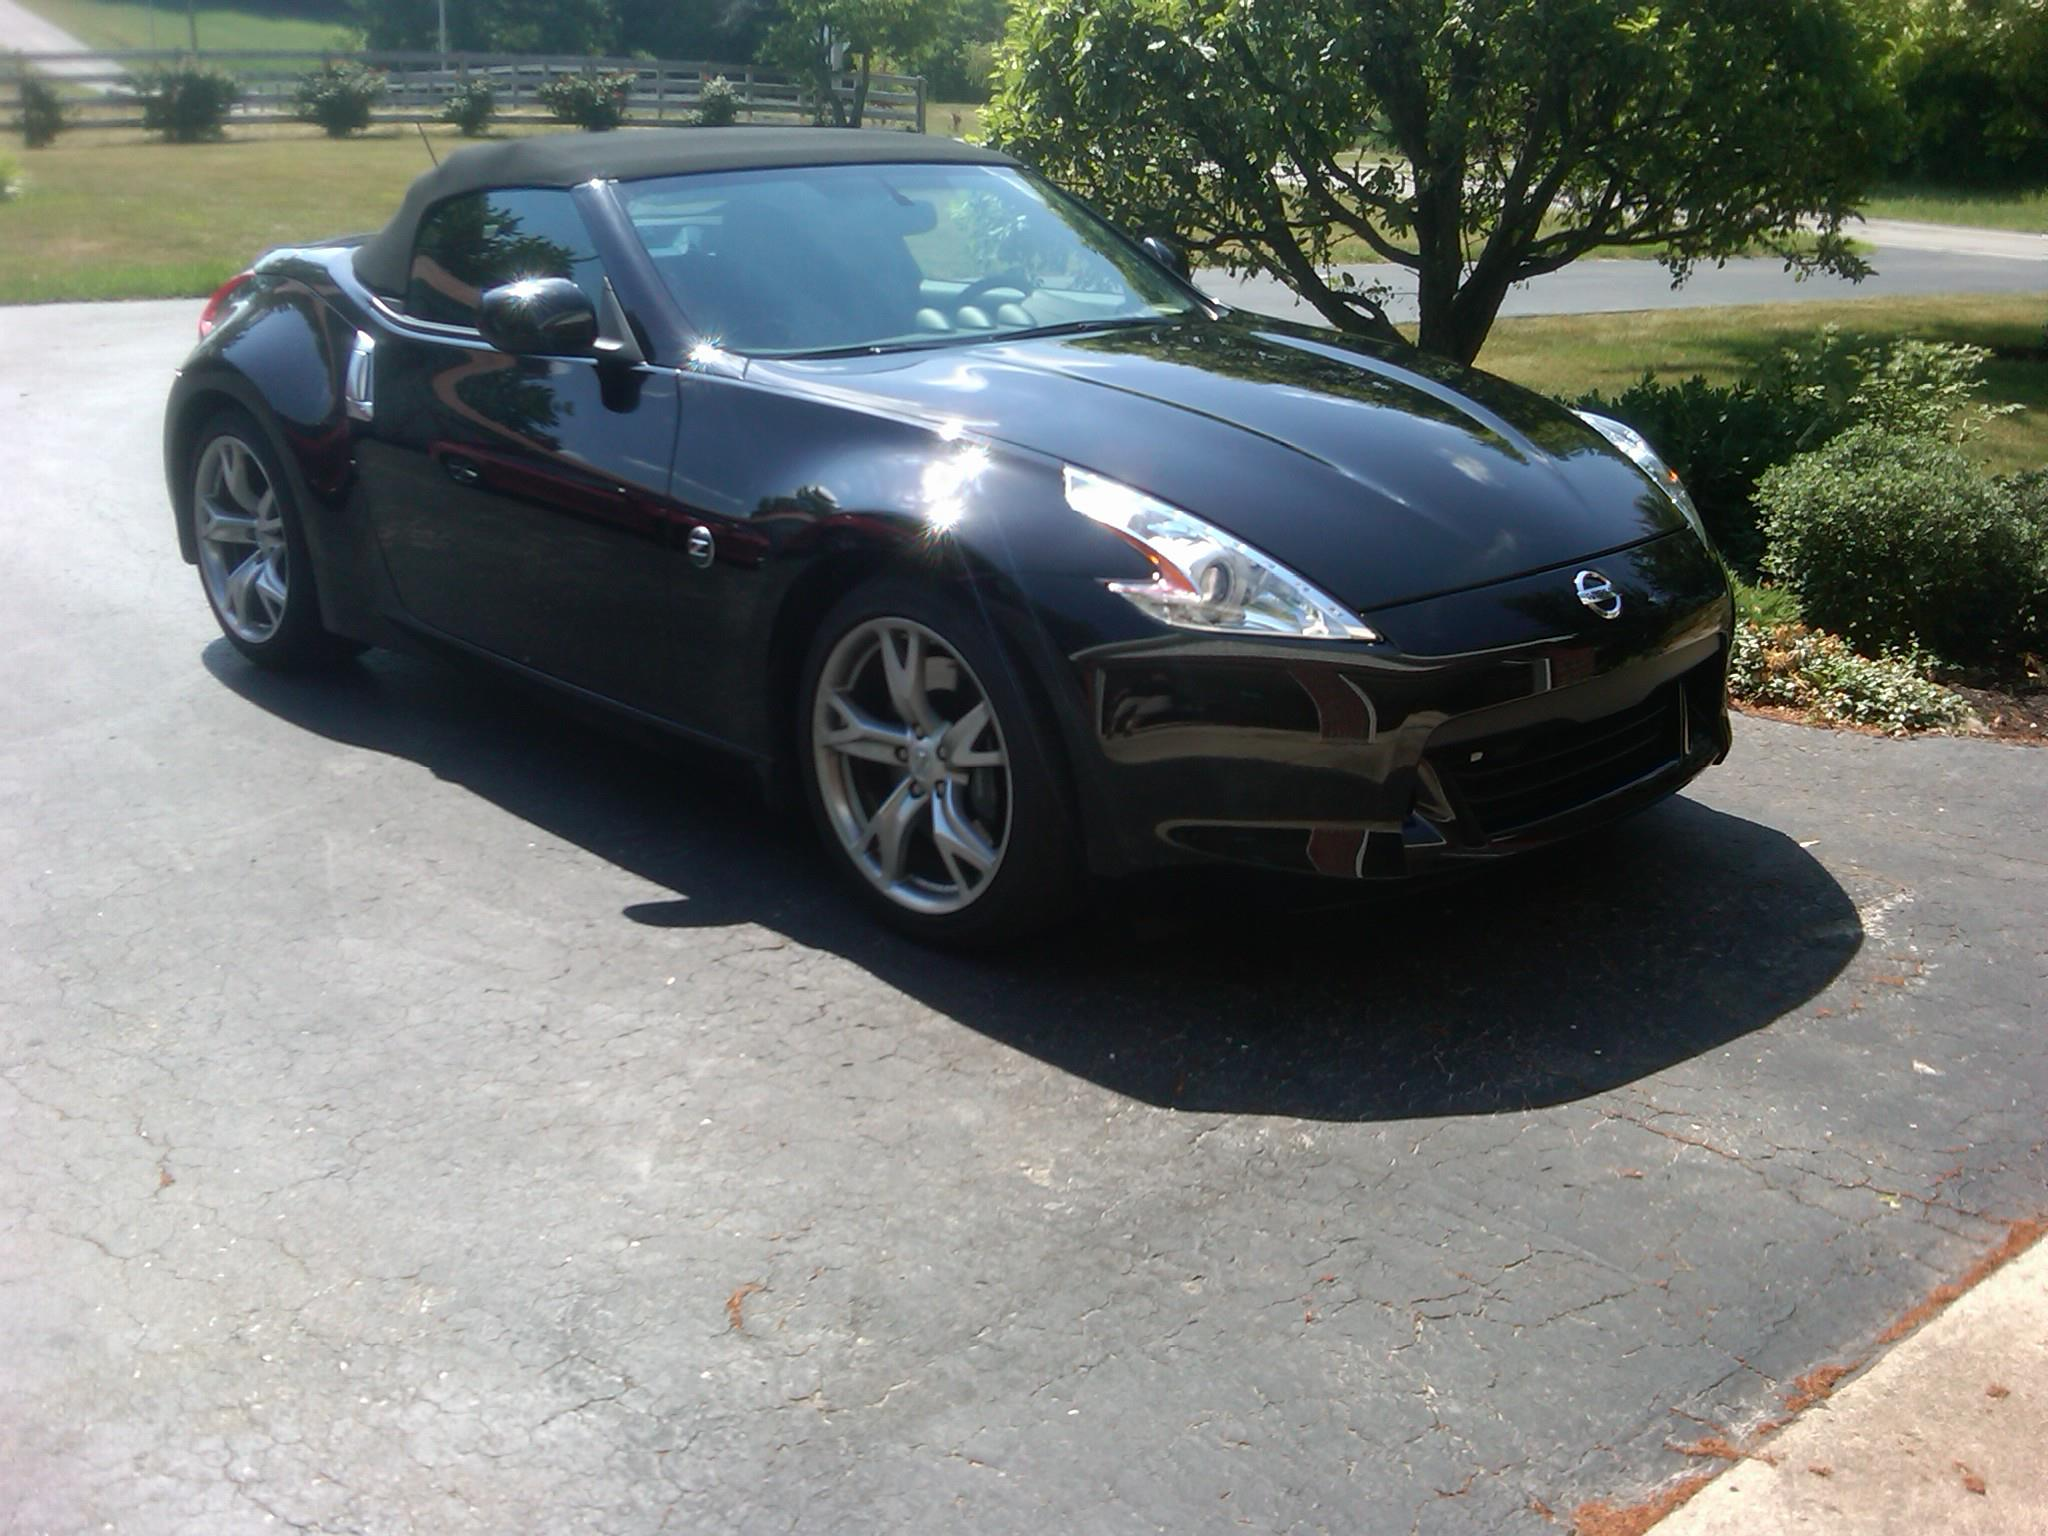 Nissan 370Z Paint Protected with Clear Bra